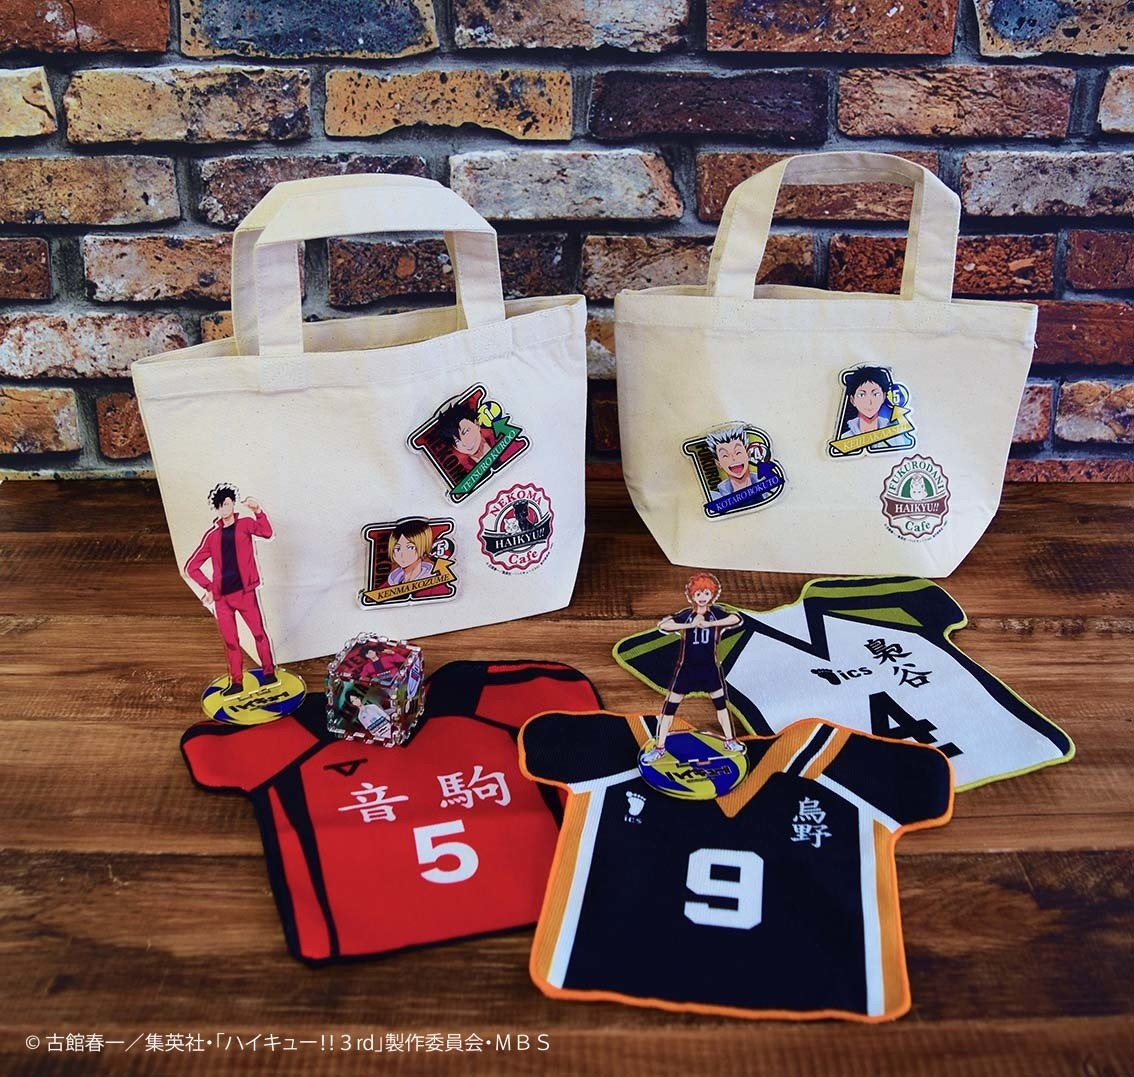 Haikyu!! x JUMP SHOP Collab Event Opening for 4th Year! | Event News | TOM  Shop: Figures & Merch From Japan